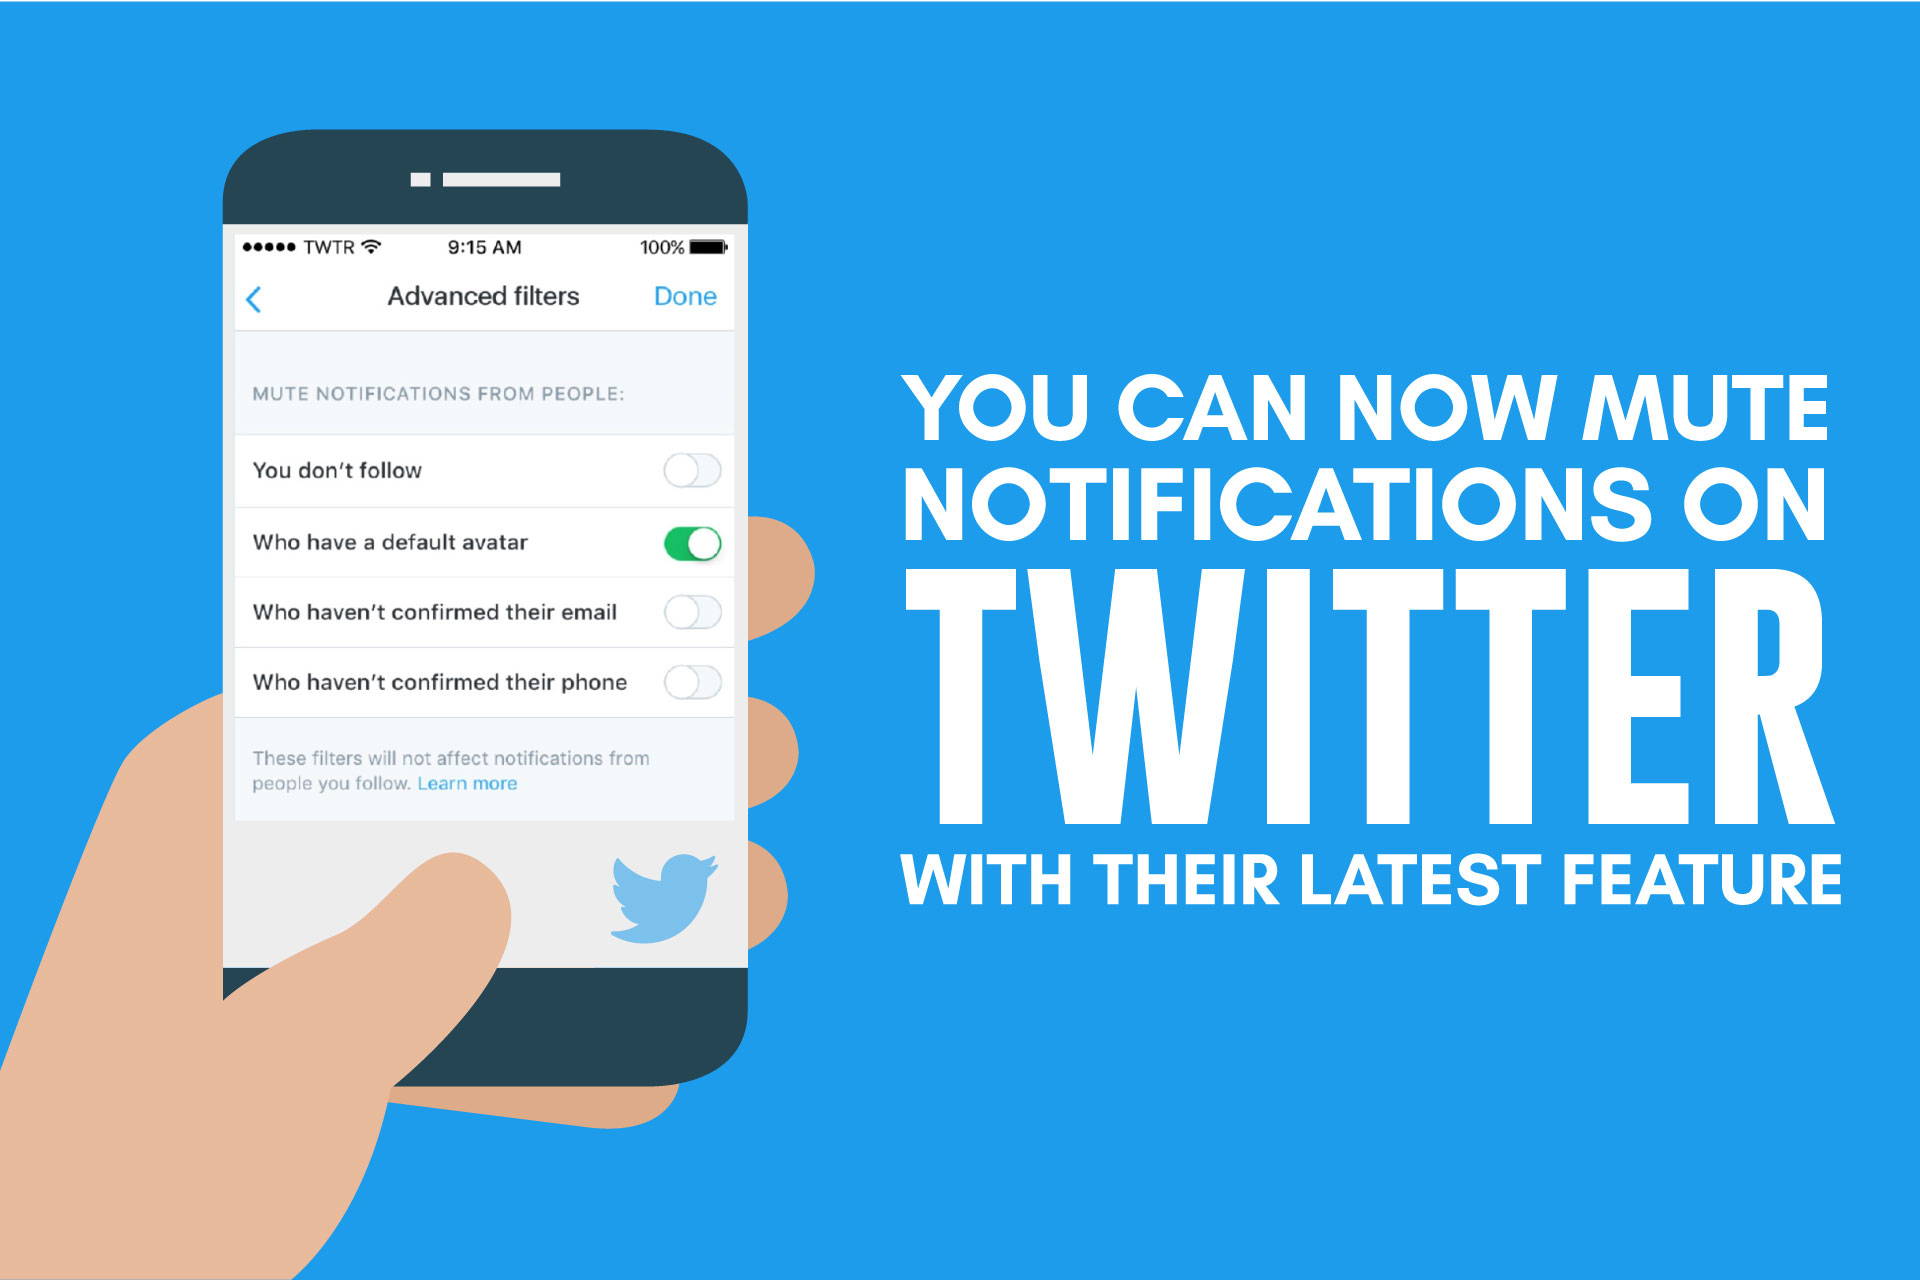 You can now mute notifications on Twitter with their latest feature